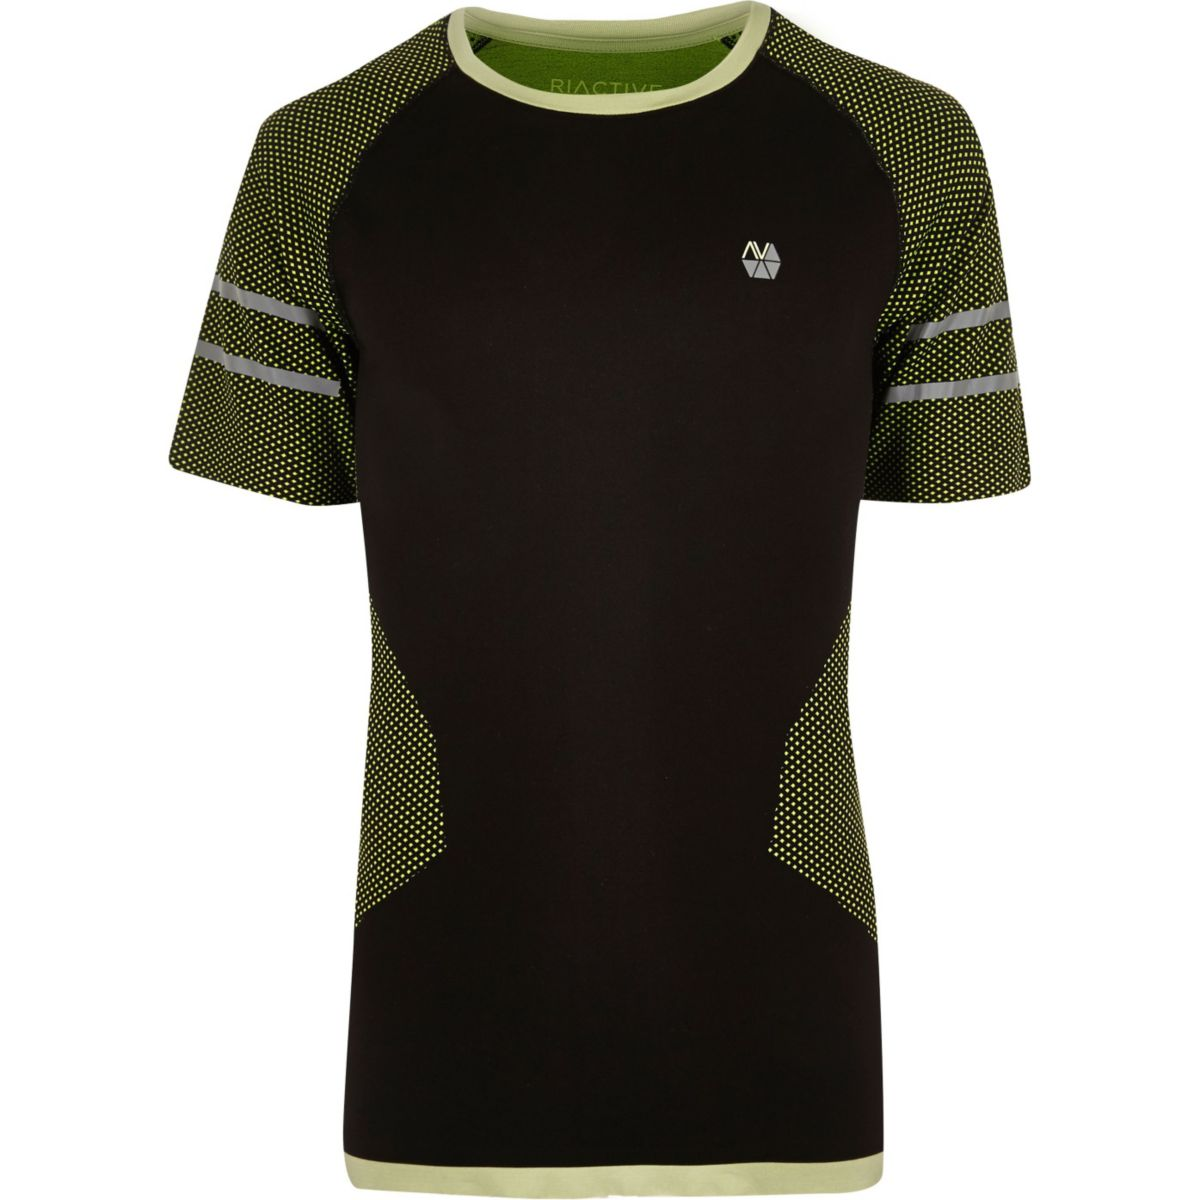 RI Active fluro black seamless sports T-shirt